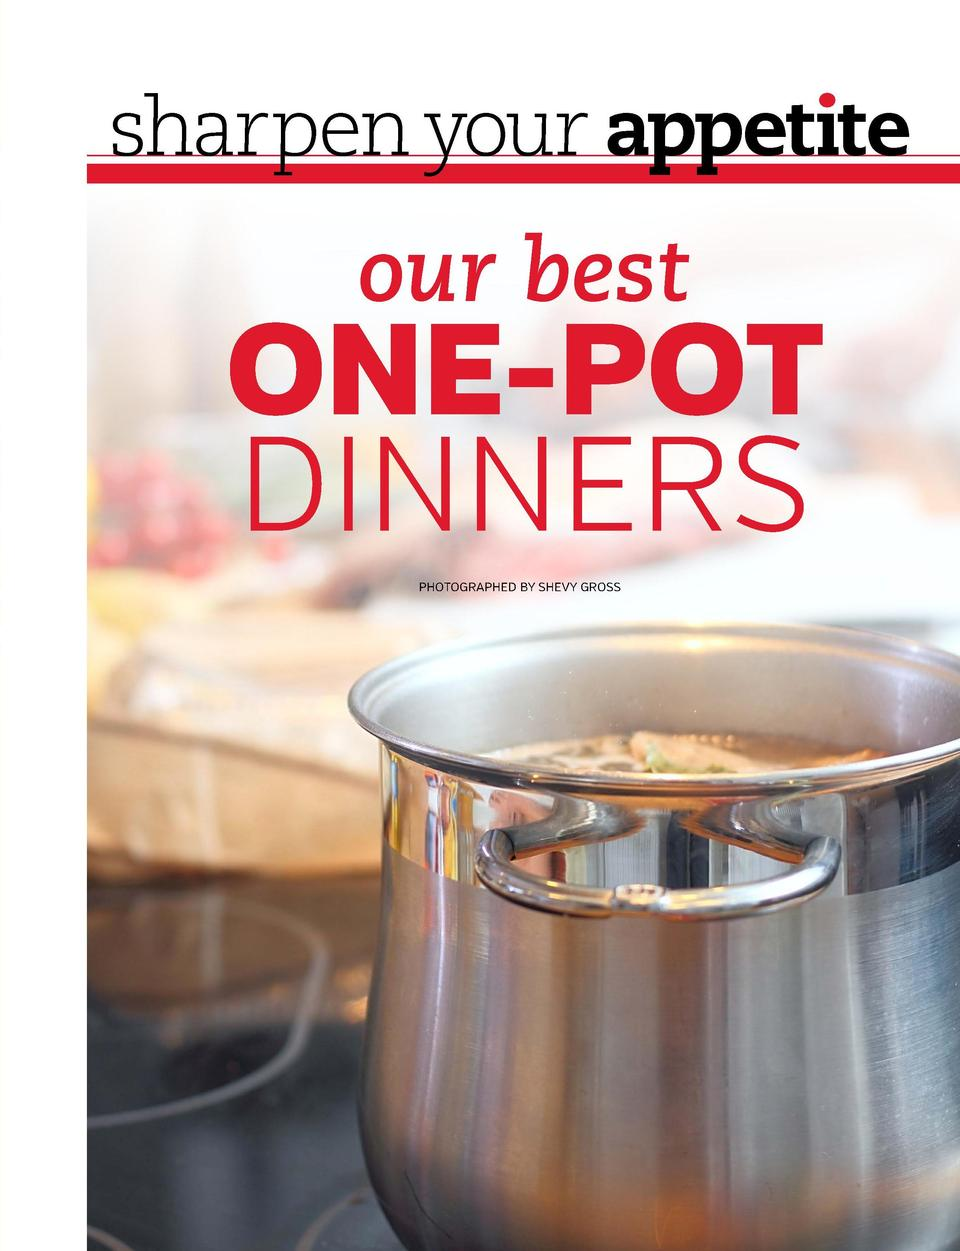 in your bus  ness  sharpen your appet  te  6 HABITS OF HIGHLY  our best  PRODUCTIVE  ONE-POT DINNERS  PEOPLE WRITTEN BY SA...